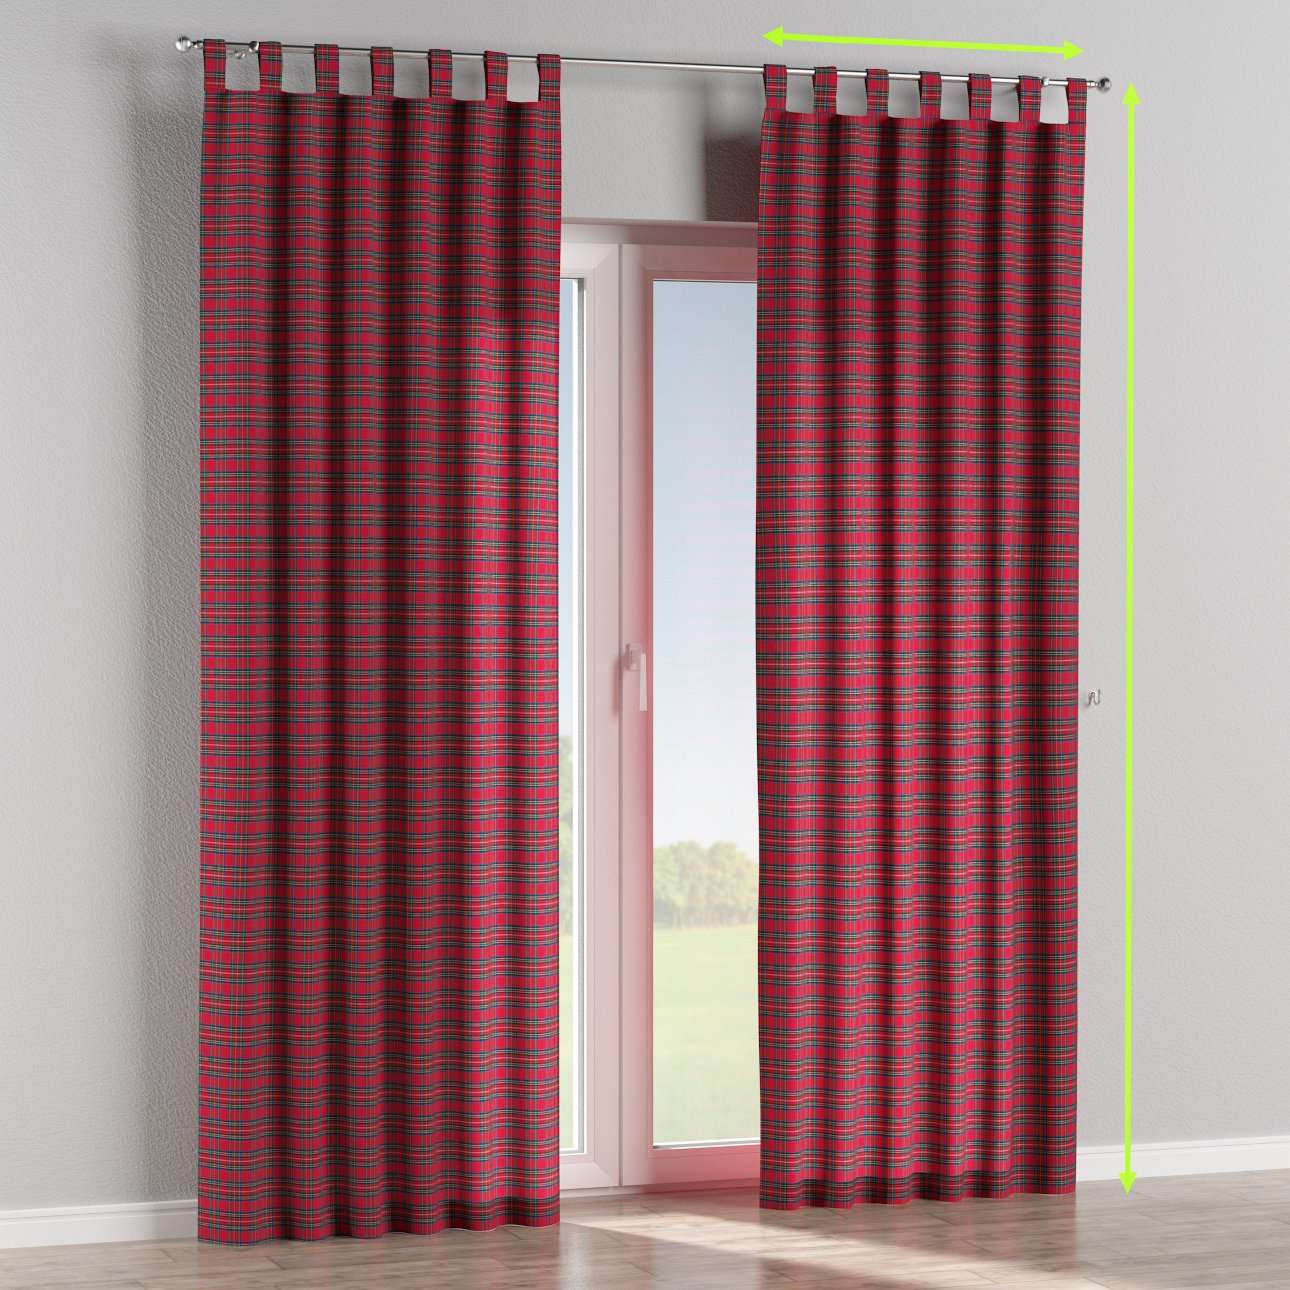 Tab top lined curtains in collection Bristol, fabric: 126-29